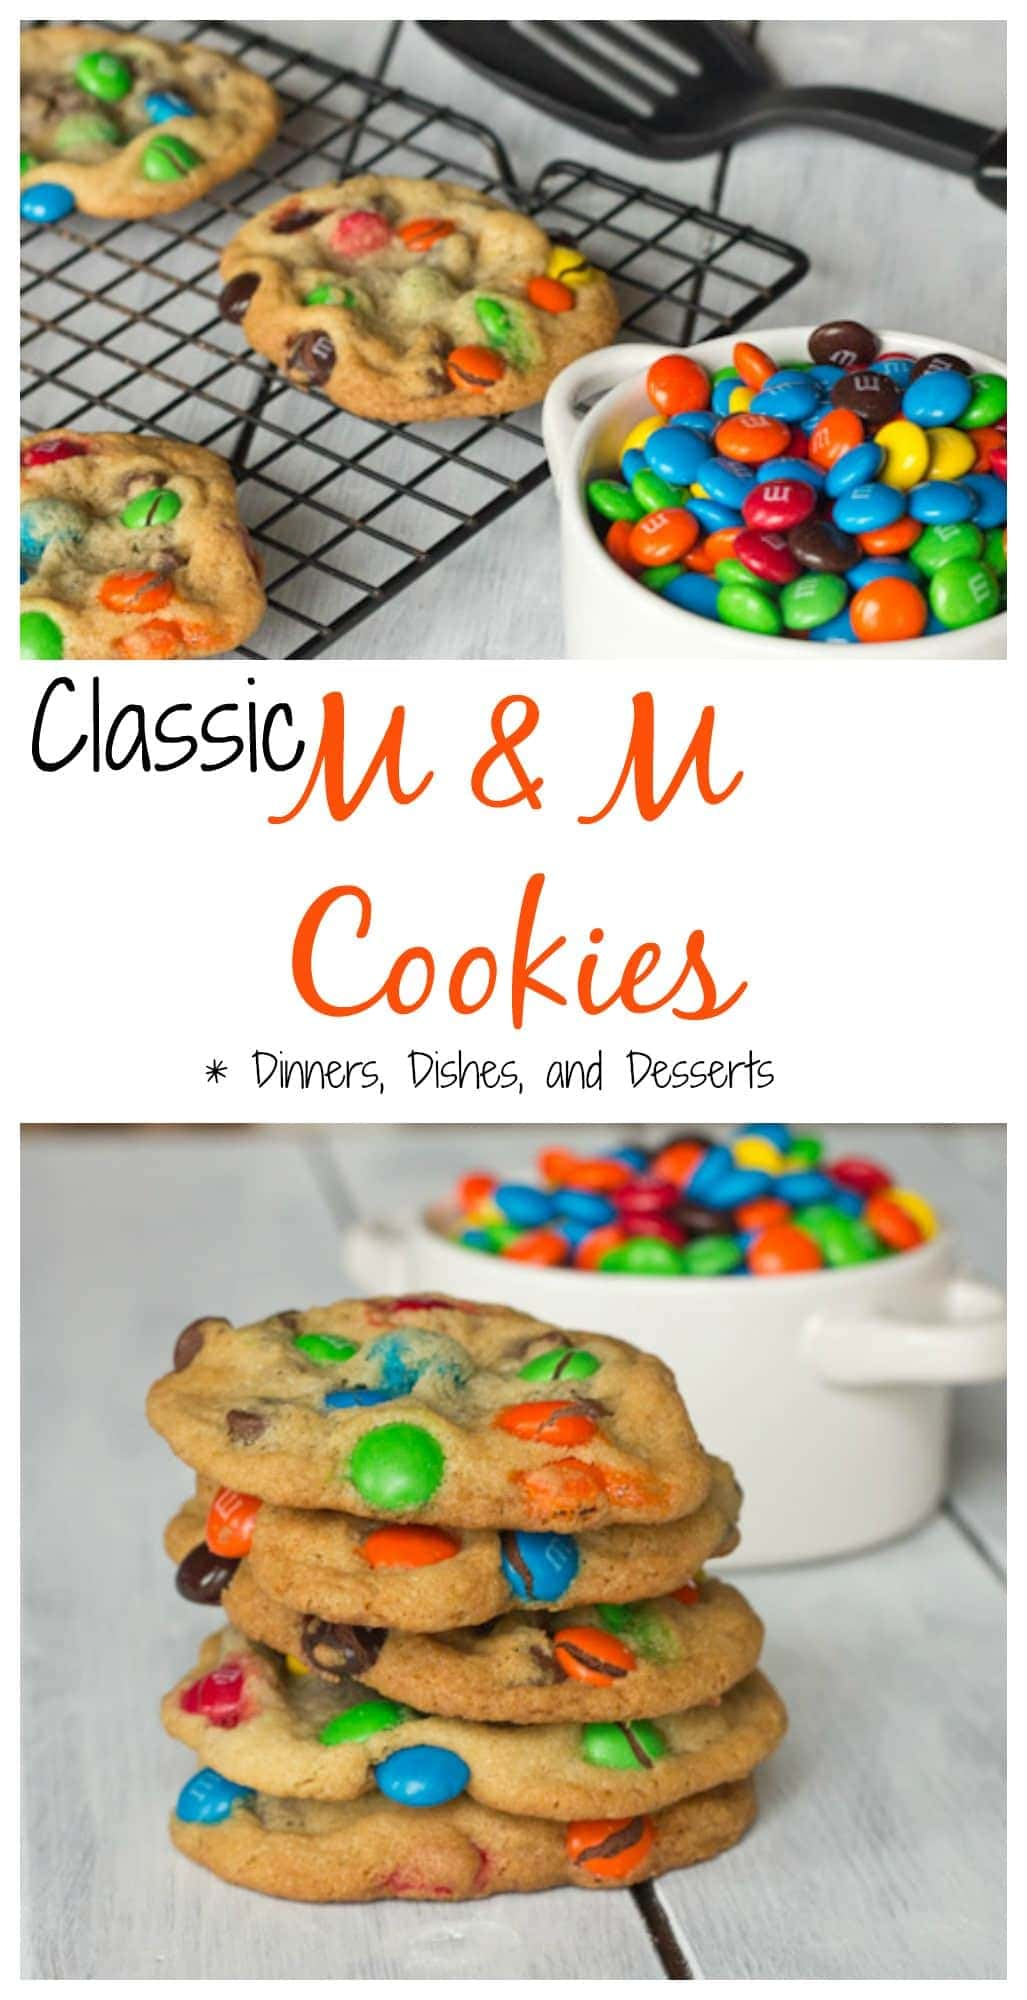 Classic M&M Cookies are chewy, soft, and super chocolate-y